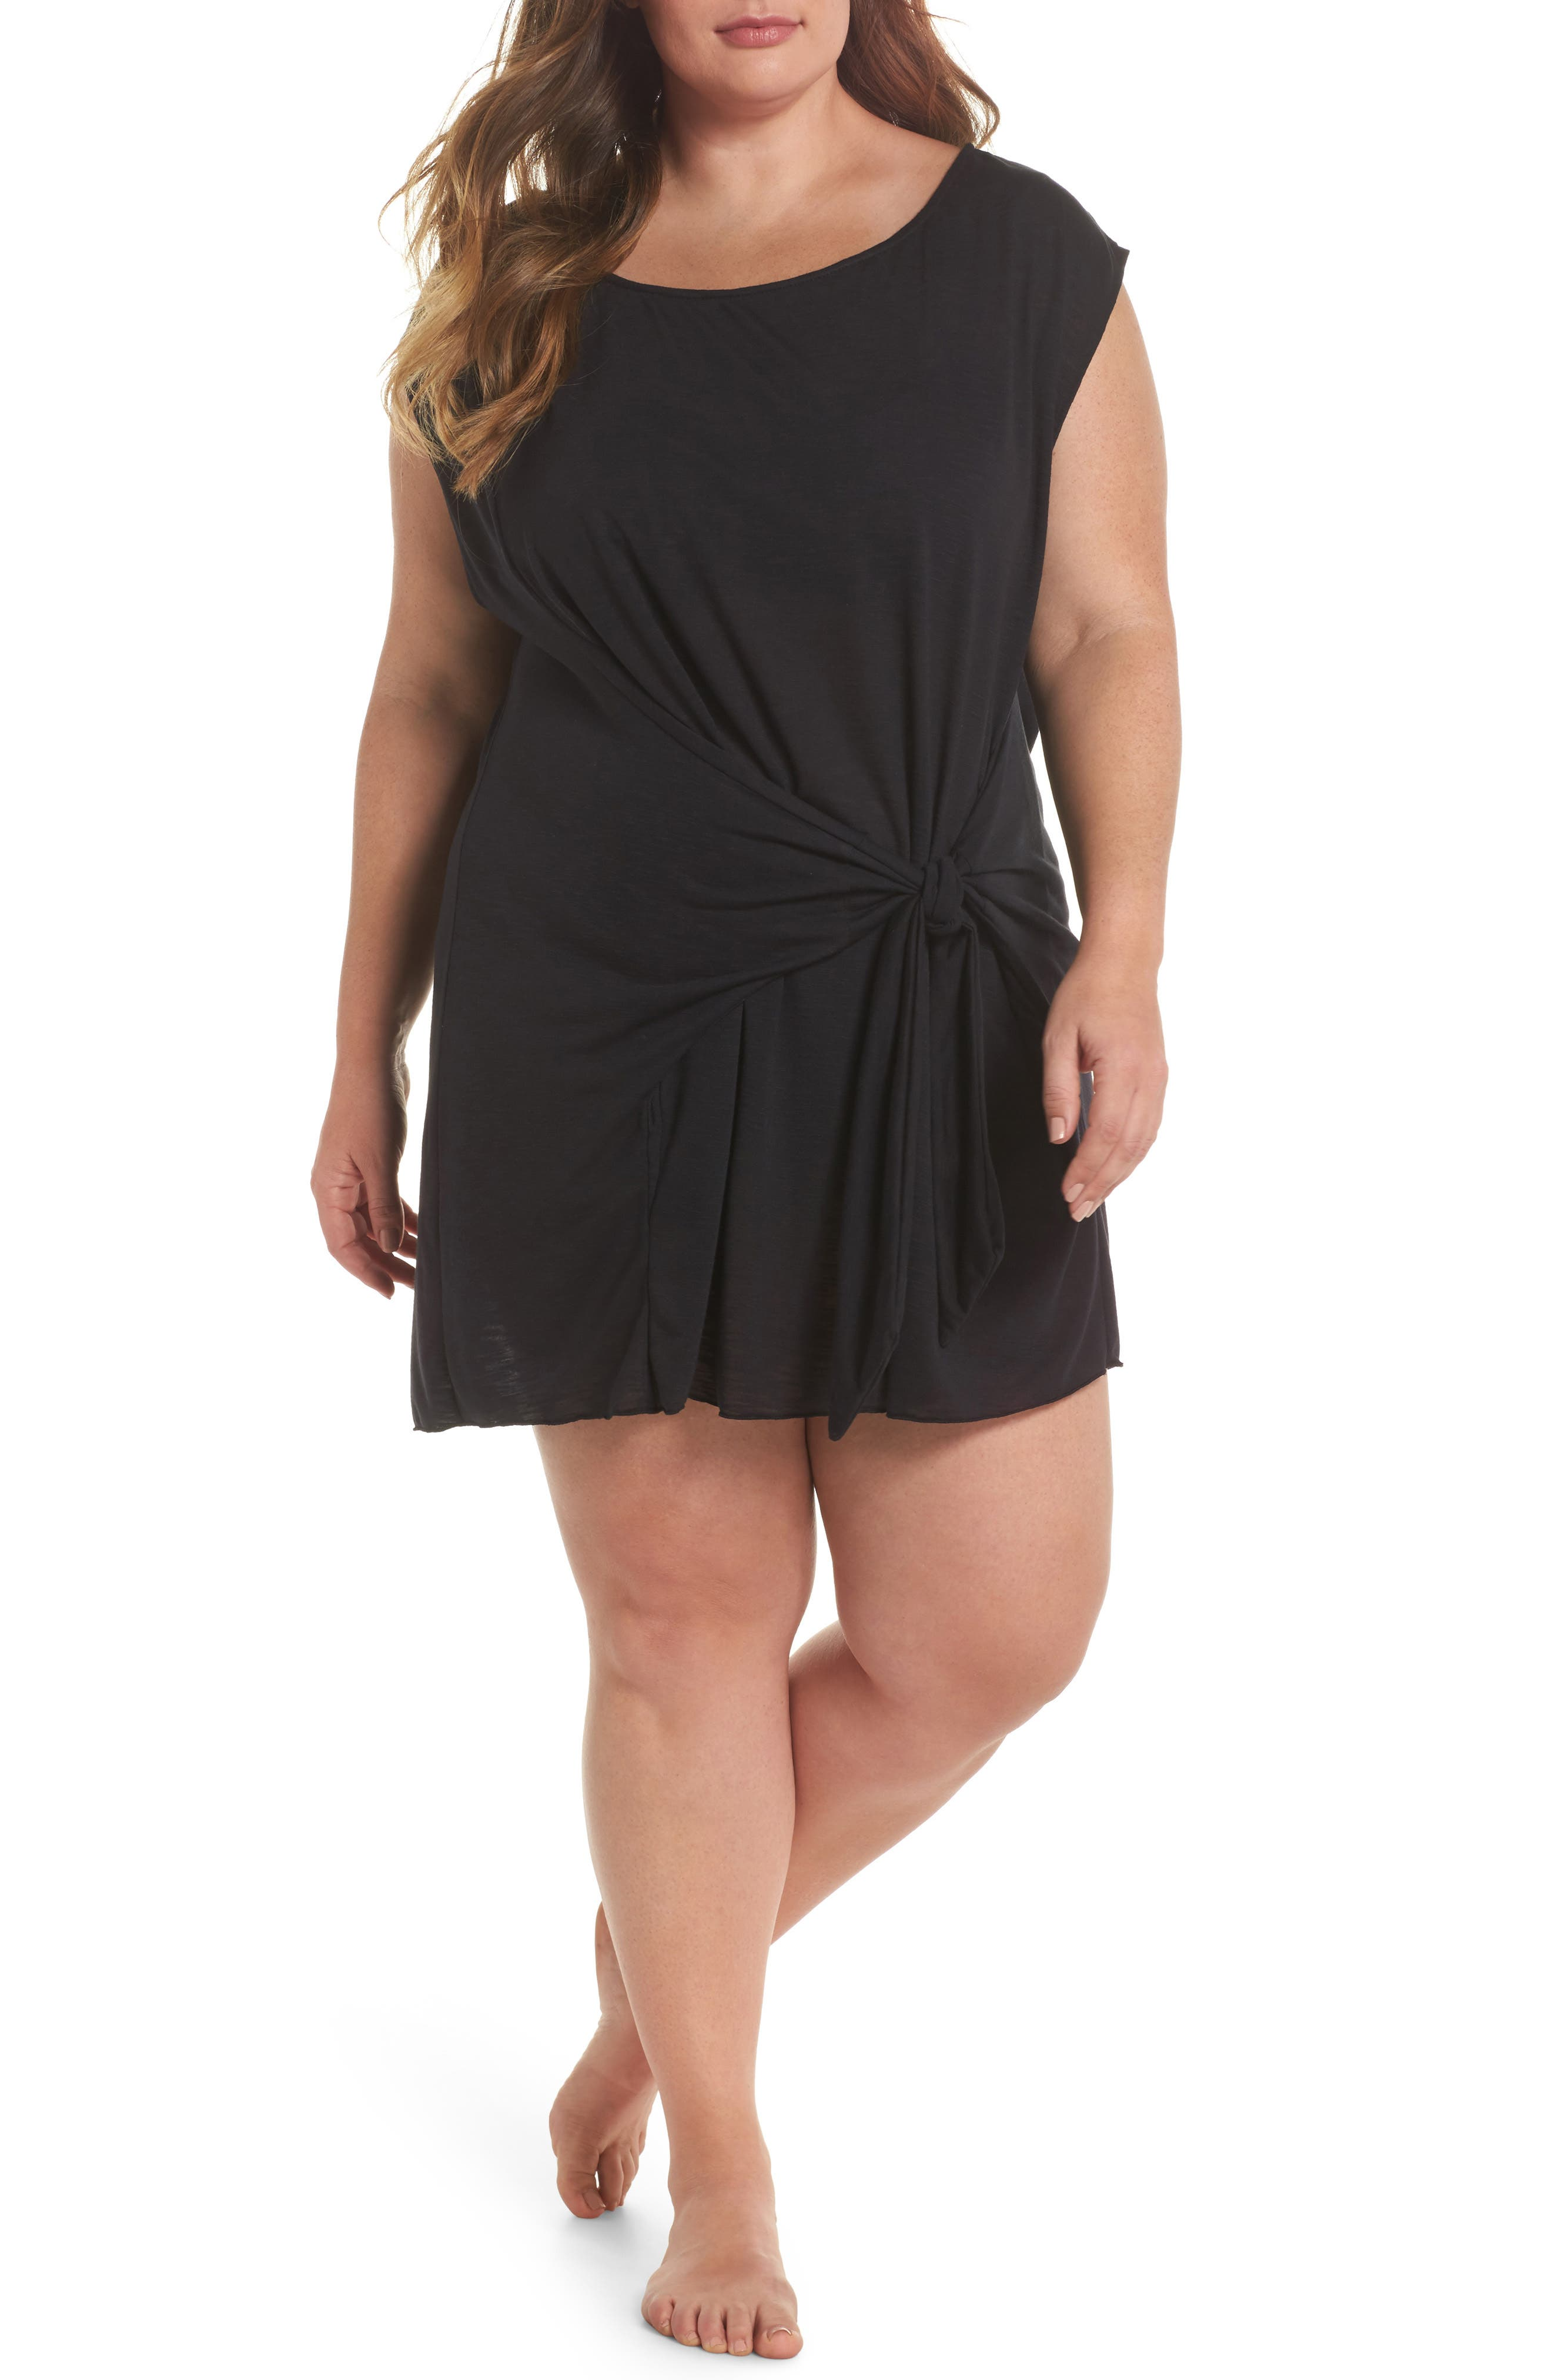 Plus Size Becca Etc. Breezy Basic Cover-Up Dress, Black